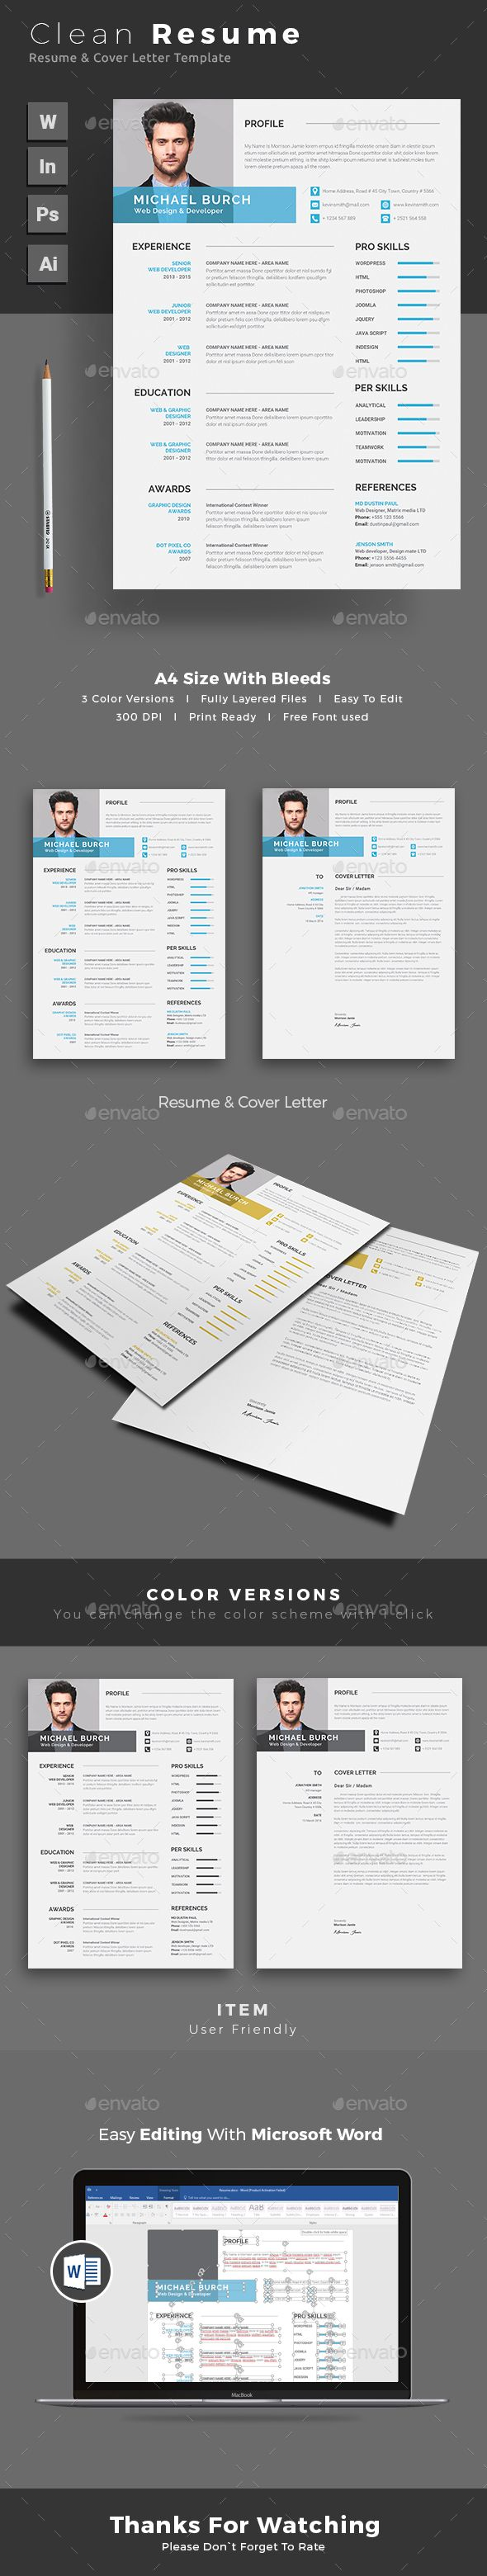 resume resumes stationery download here - Creative Resume Template Download Free